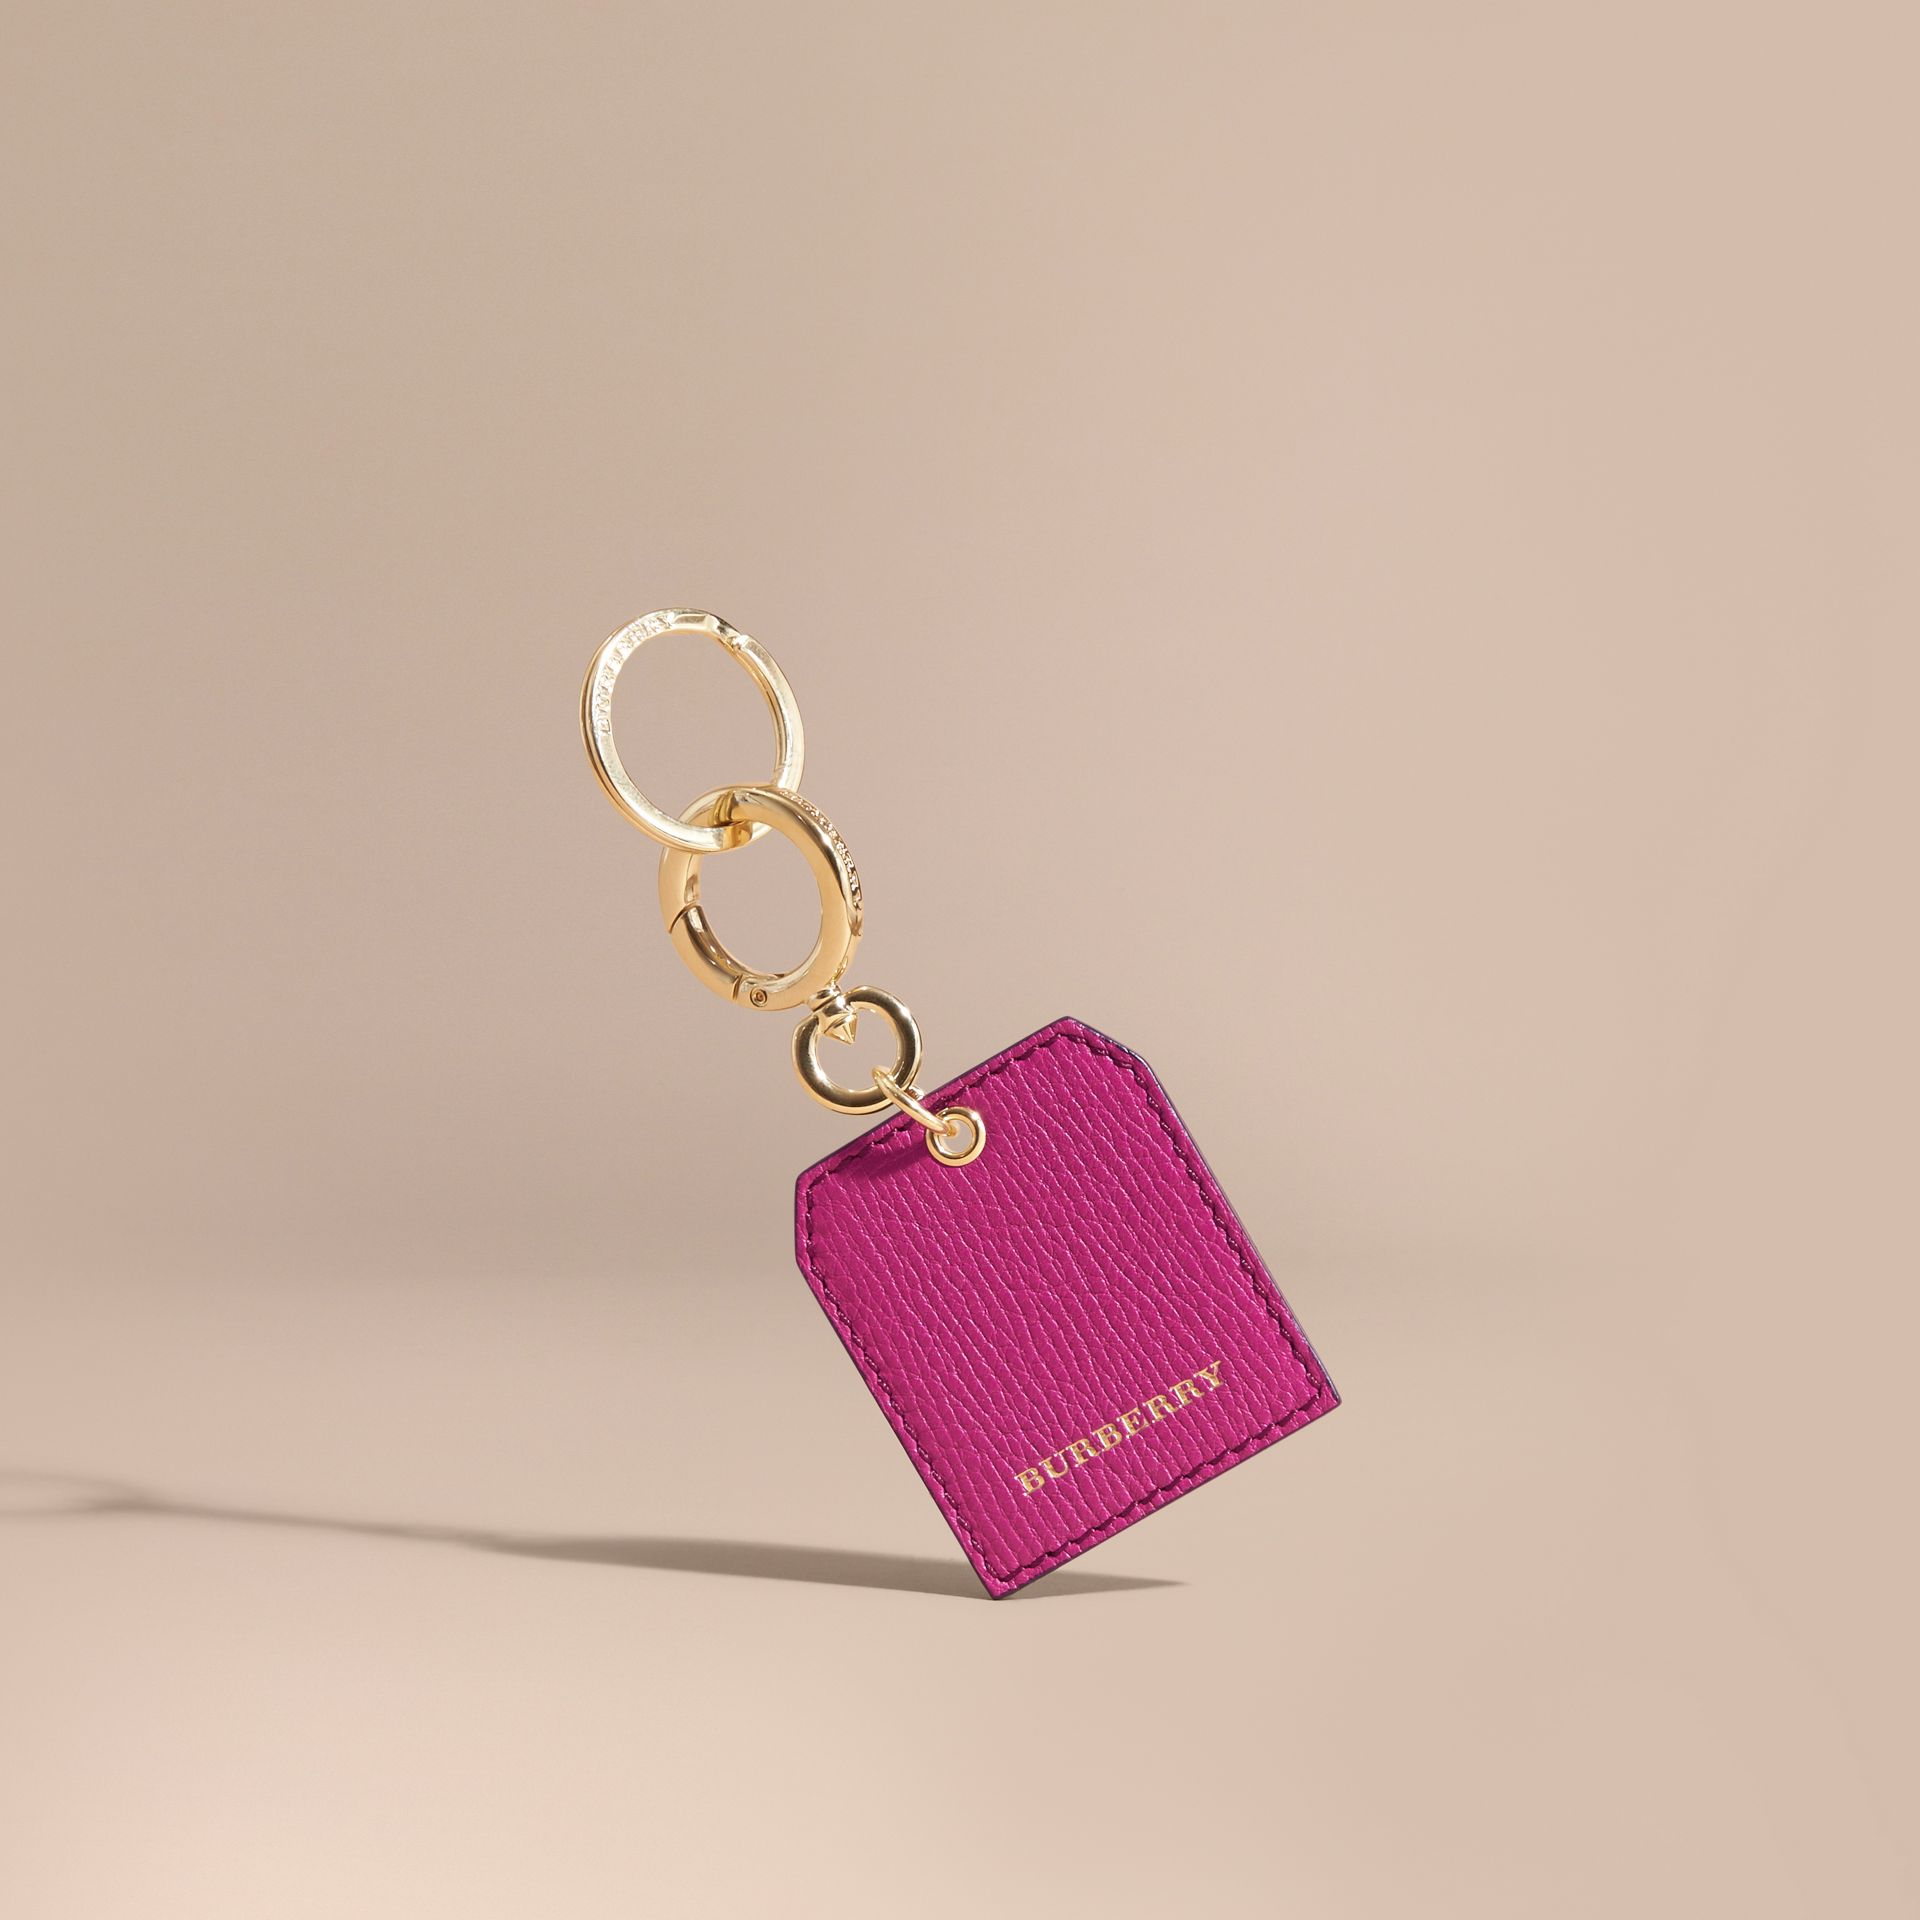 Grainy Leather Key Charm in Brilliant Fuchsia - Women | Burberry - gallery image 1